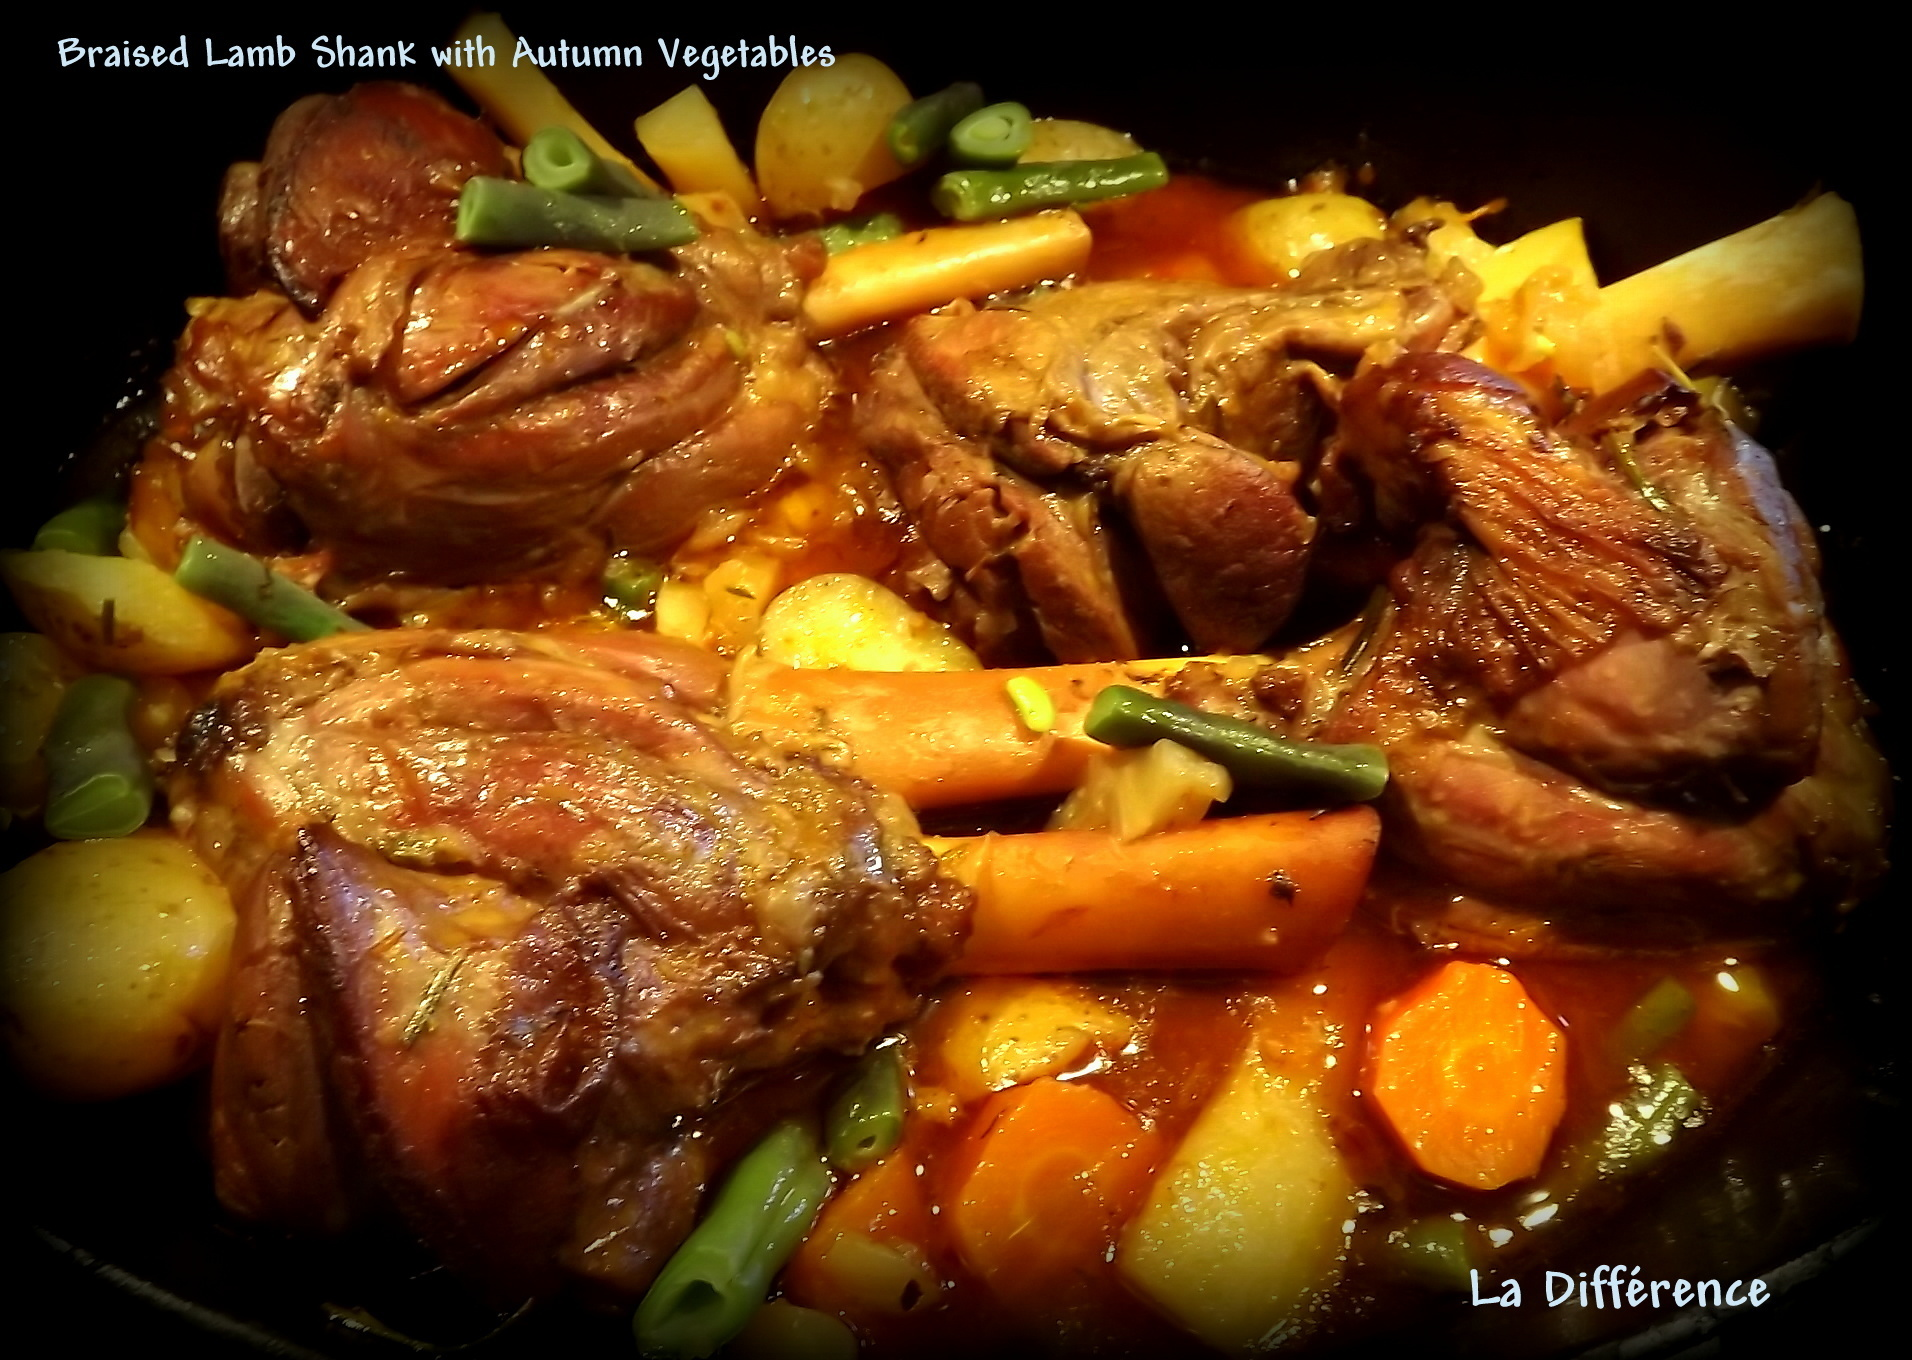 Braised Lamb Shanks with Autumn Vegetables